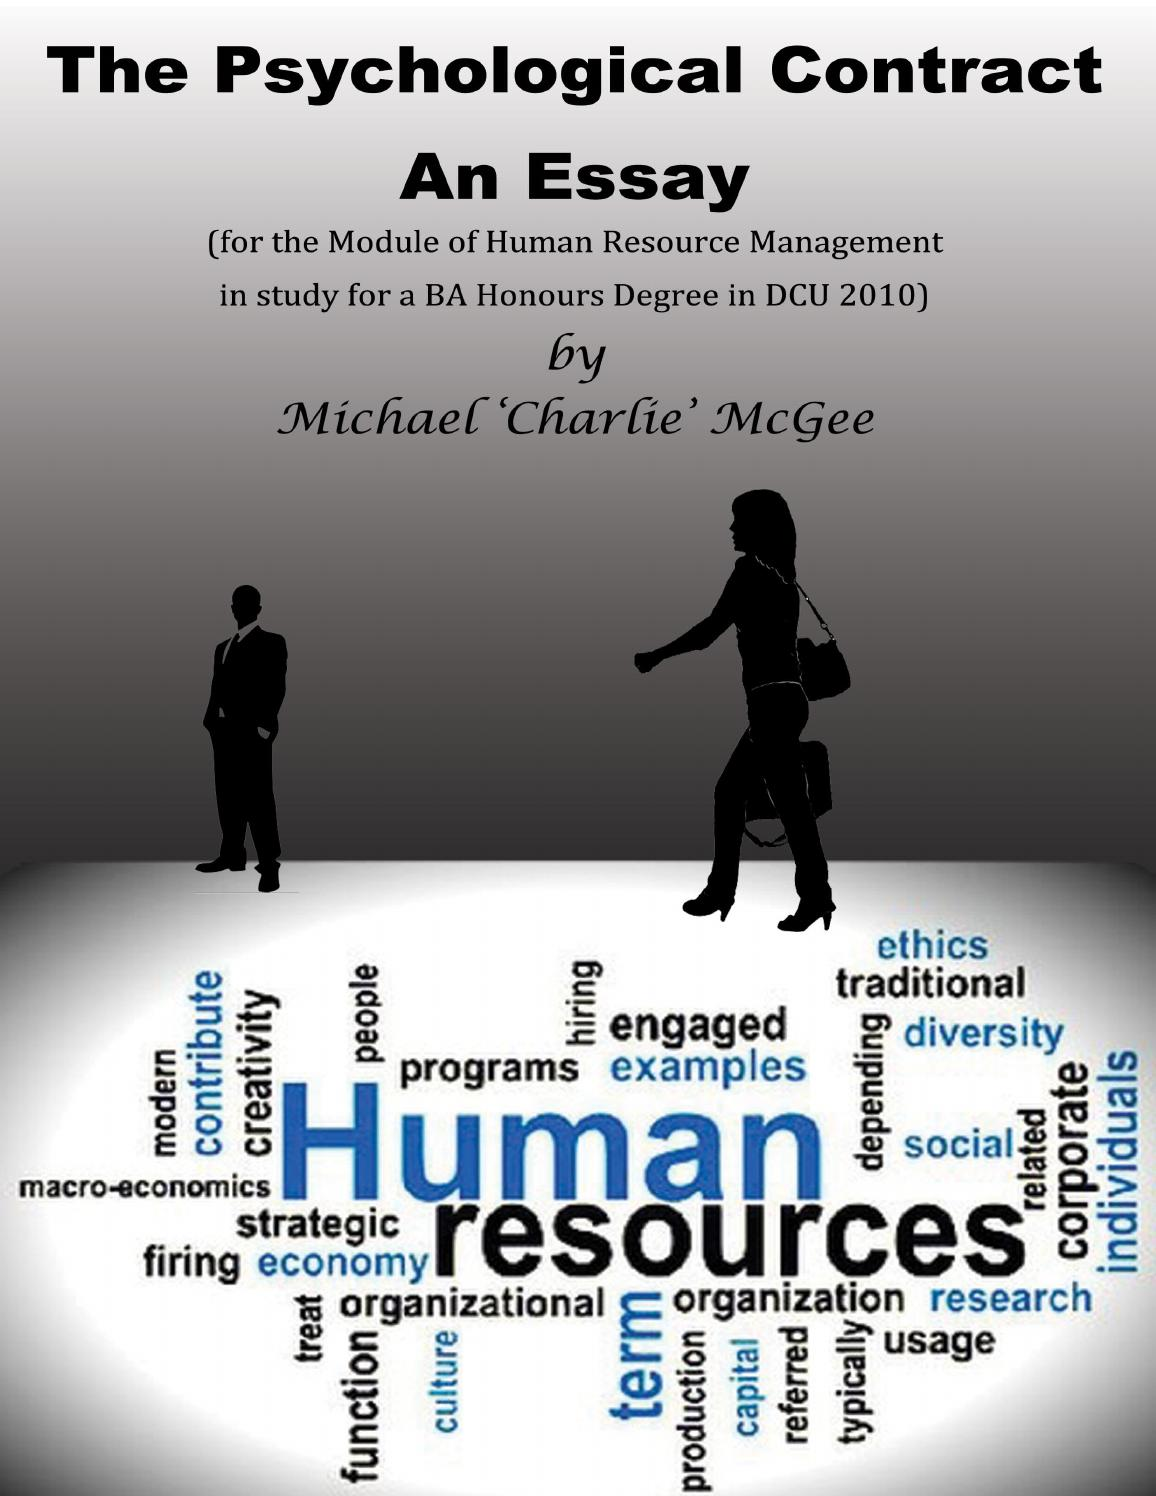 human resources compliance and ethics essay